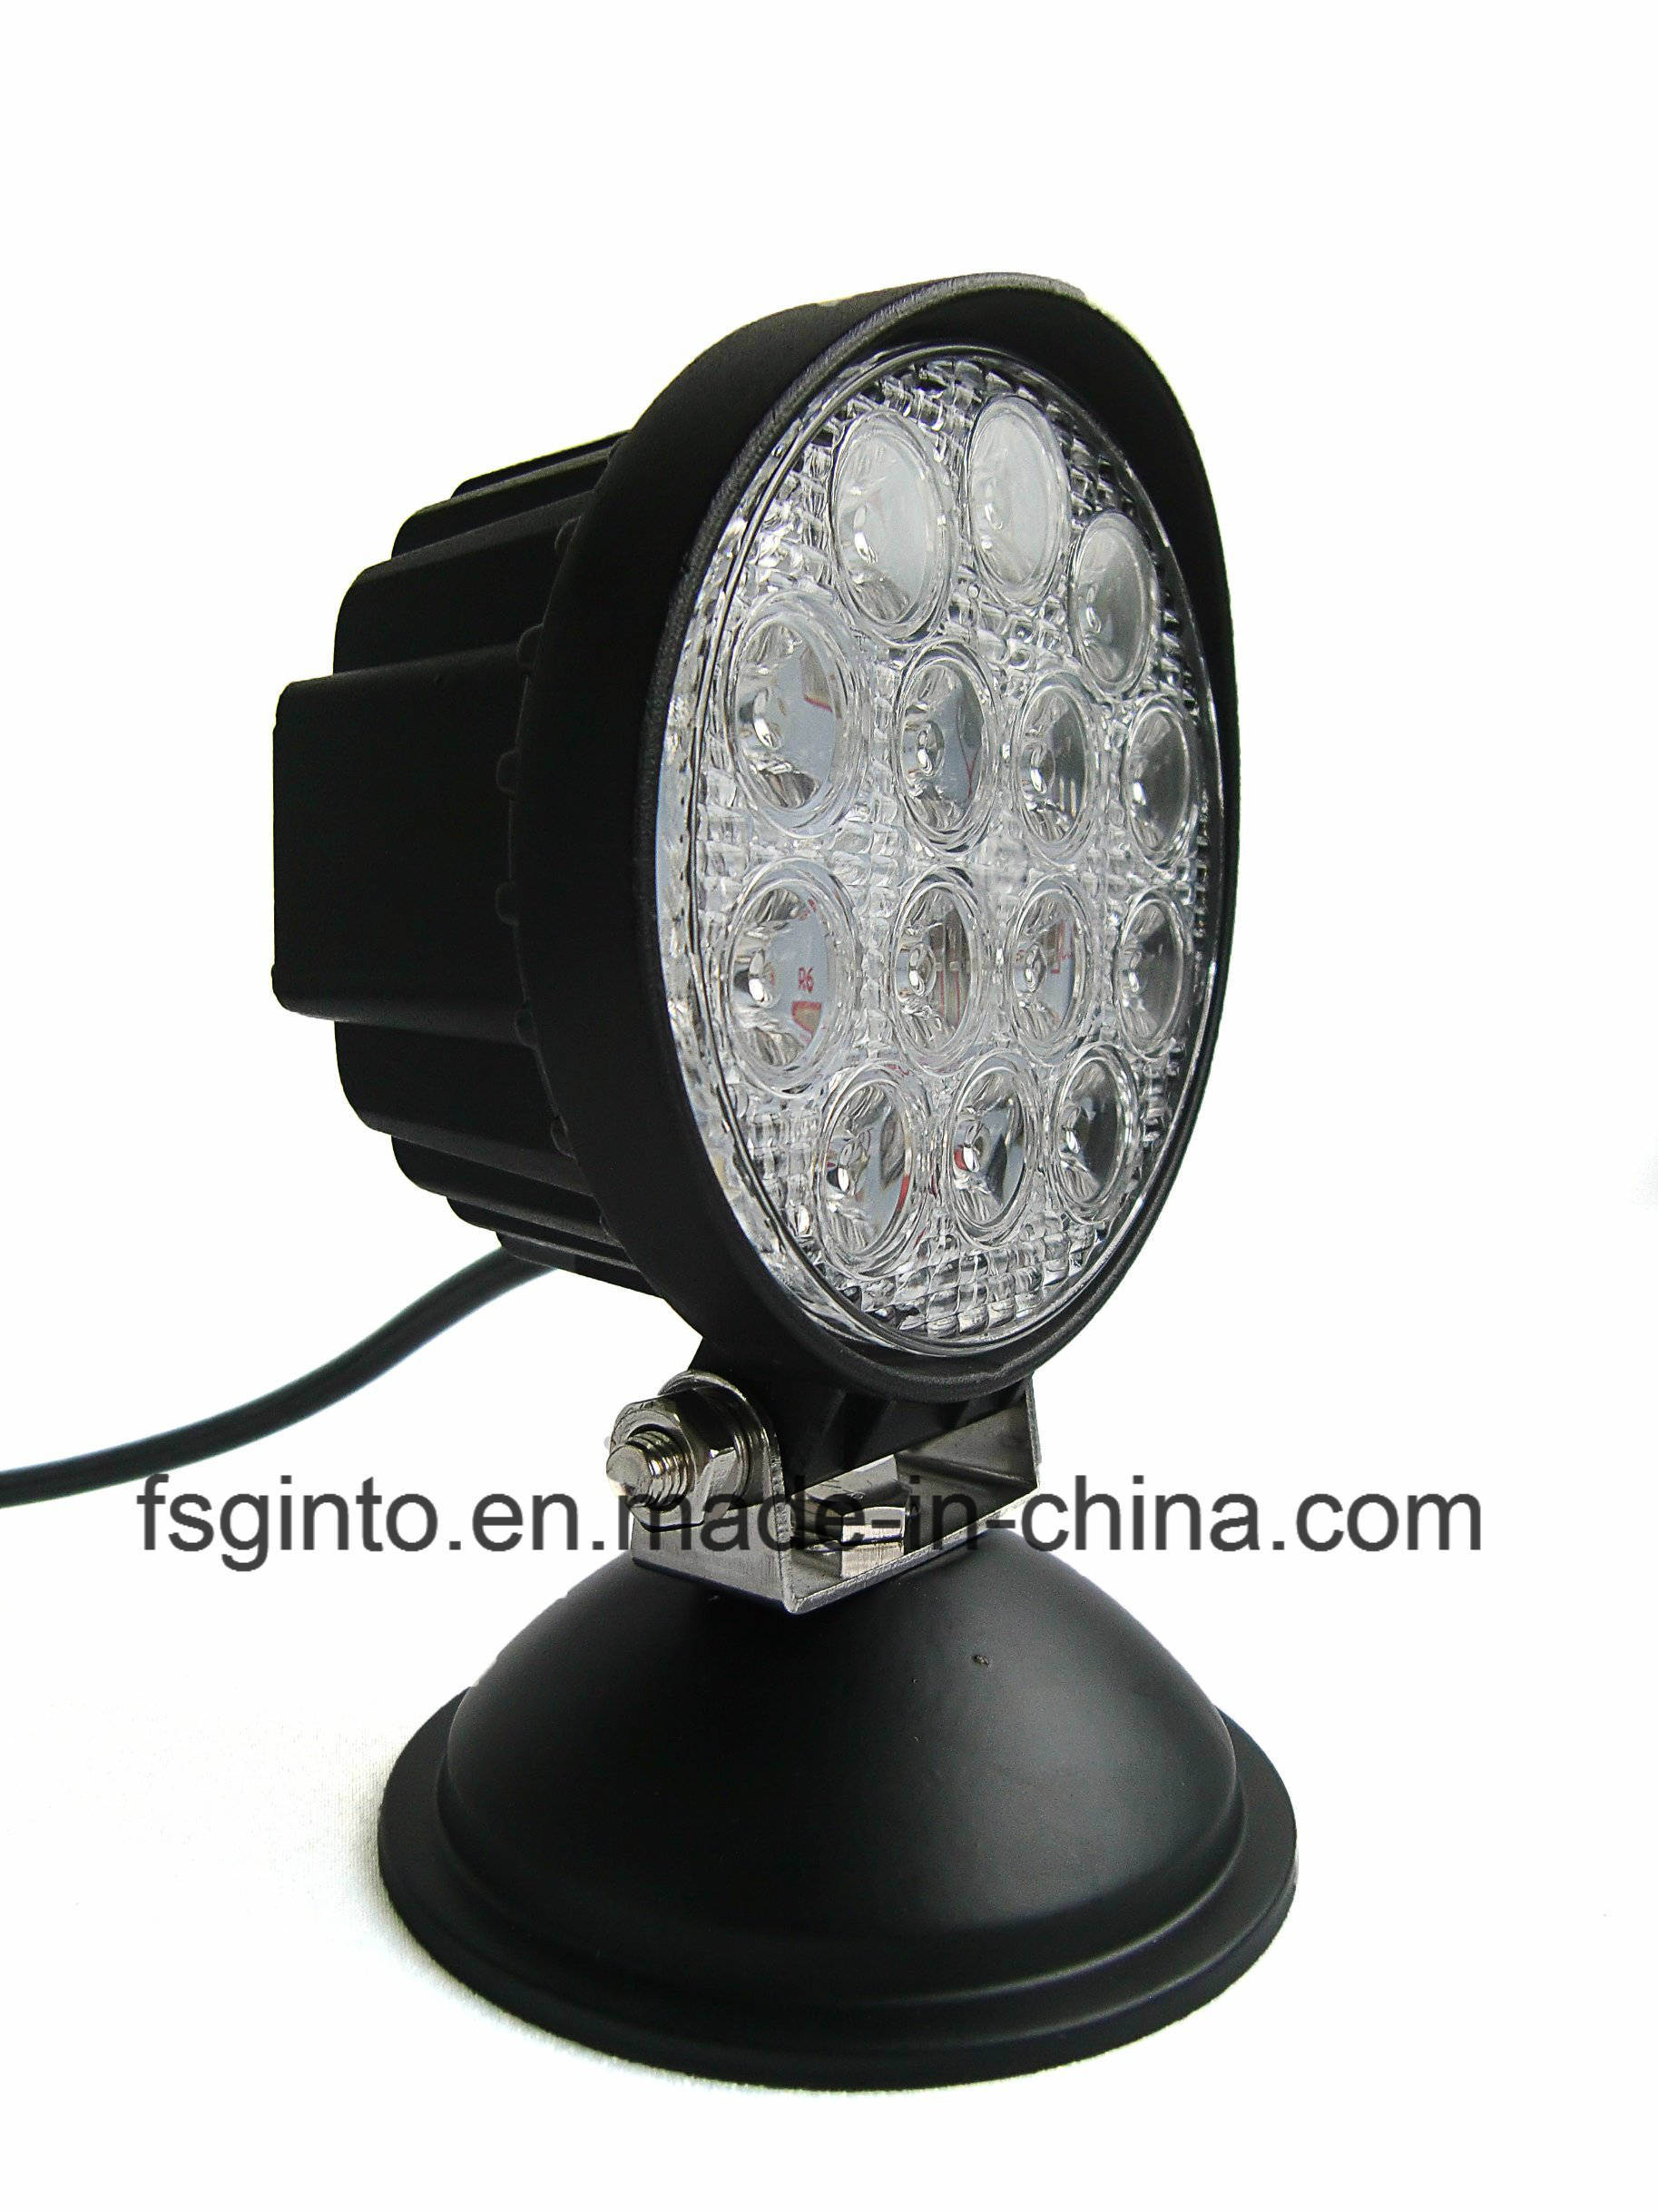 Car Auto Parts 12V/24V Quality High Power LED Work Light for Truck pictures & photos